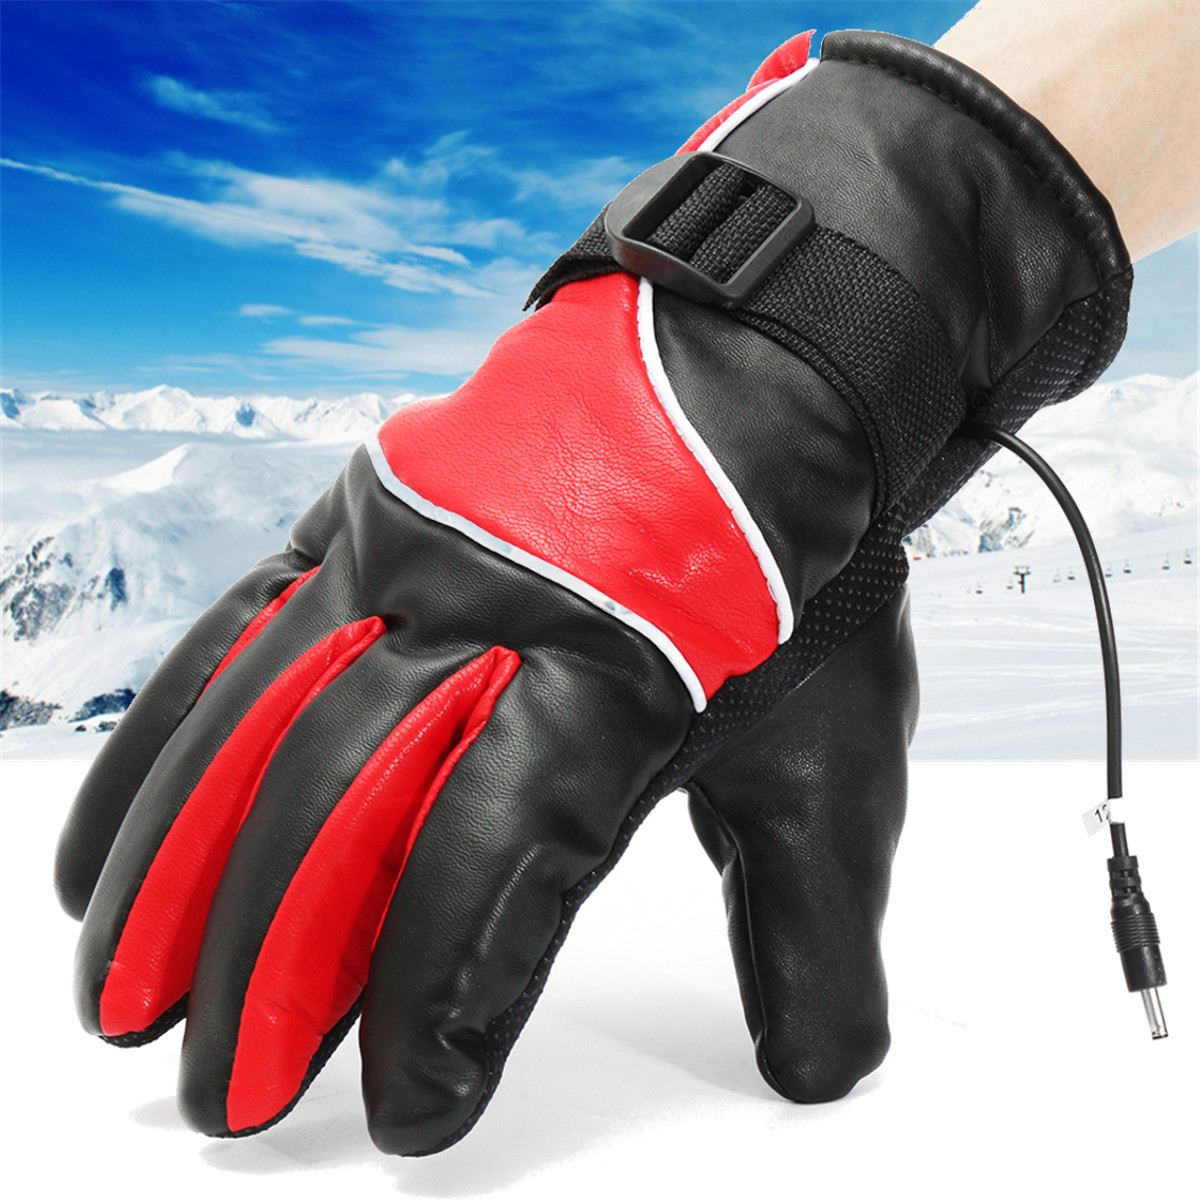 1 Pair 12V Motorcycle Bike Winter Warm Gloves Electric Heated Gloves Waterproof Fashion Ski Gloves For Outdoor Work Riding 1 pair 4000mah rechargeable battery with smart switch on off electric heated warm glove winter outdoor work ski warmer gloves